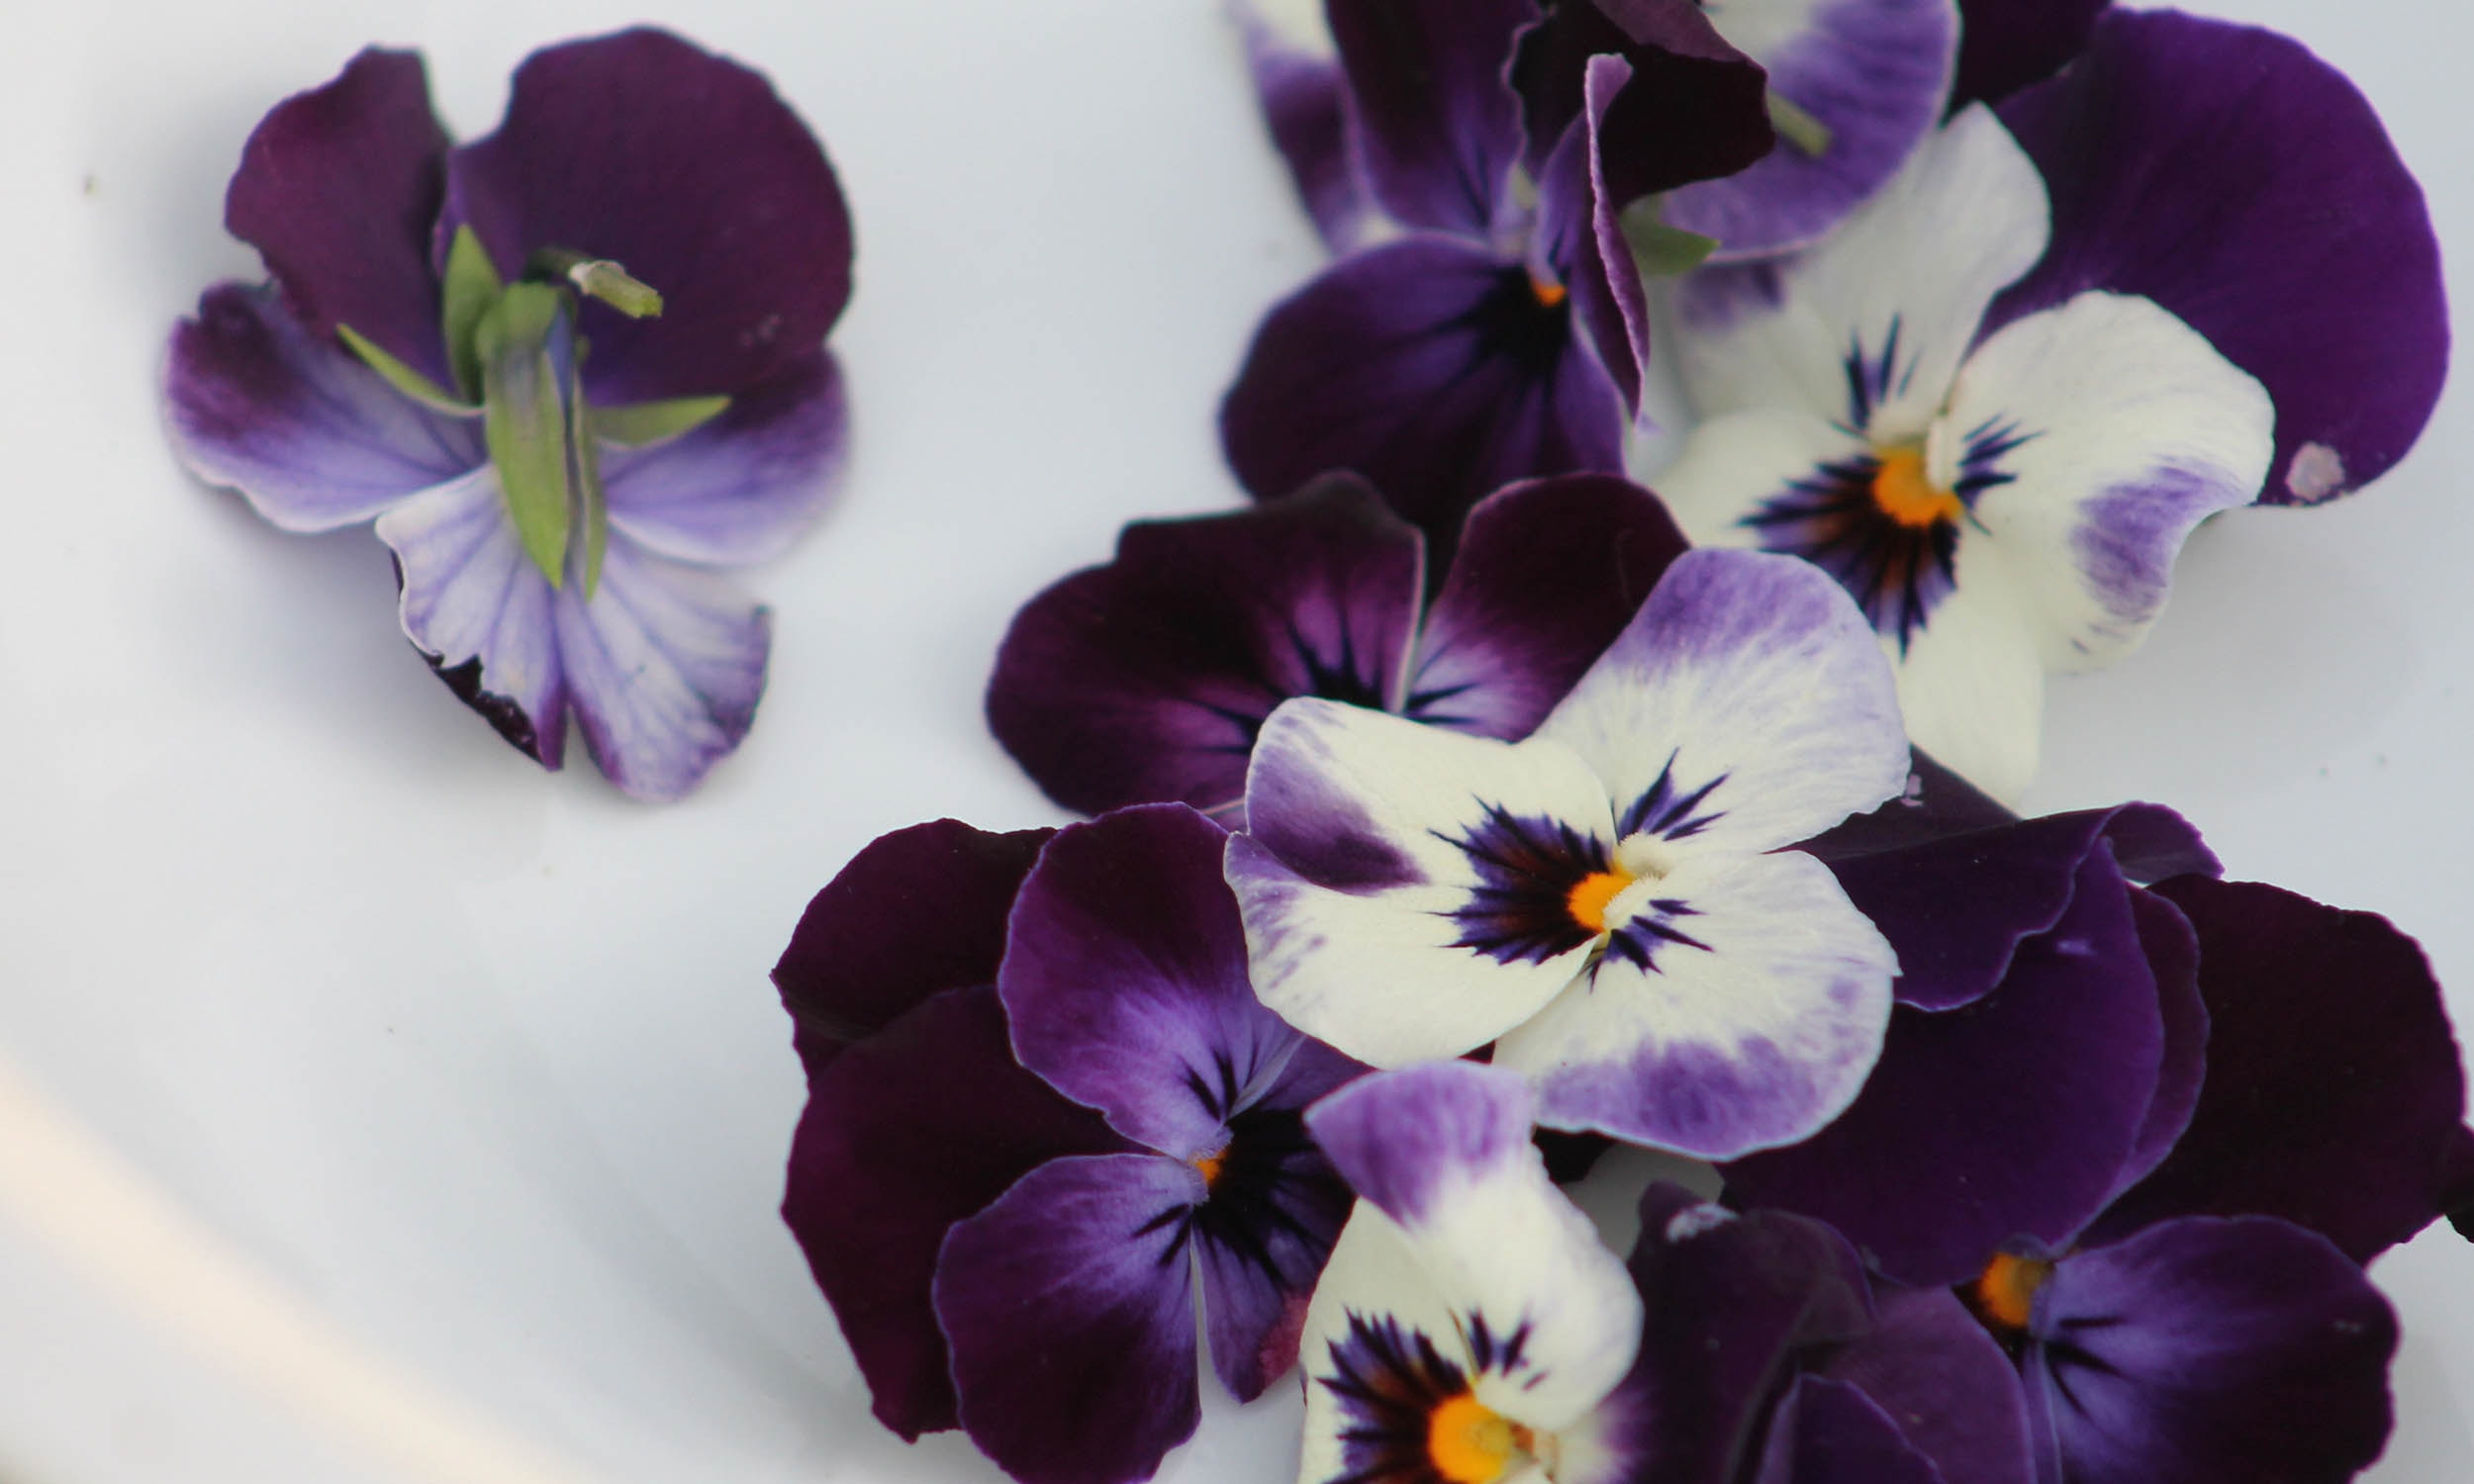 mix of light and dark purple violets